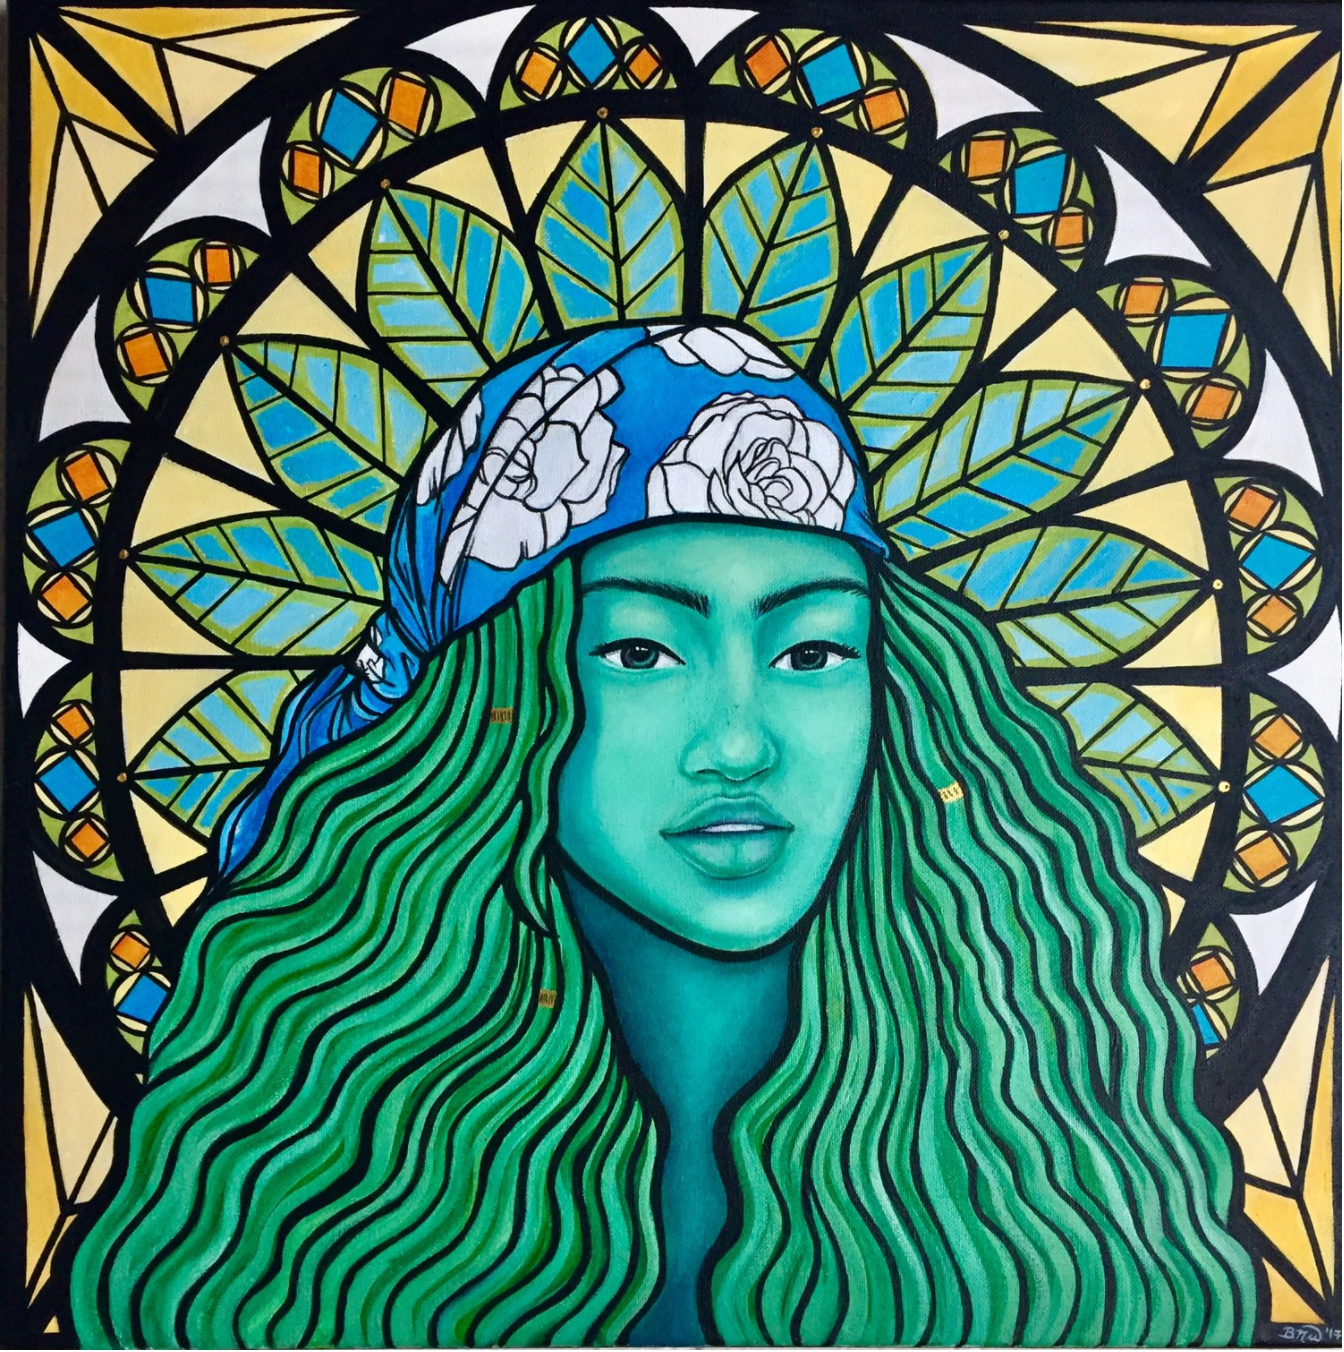 Serenity   2017. Acrylic on canvas. 20 x 20.  $400 -  SOLD